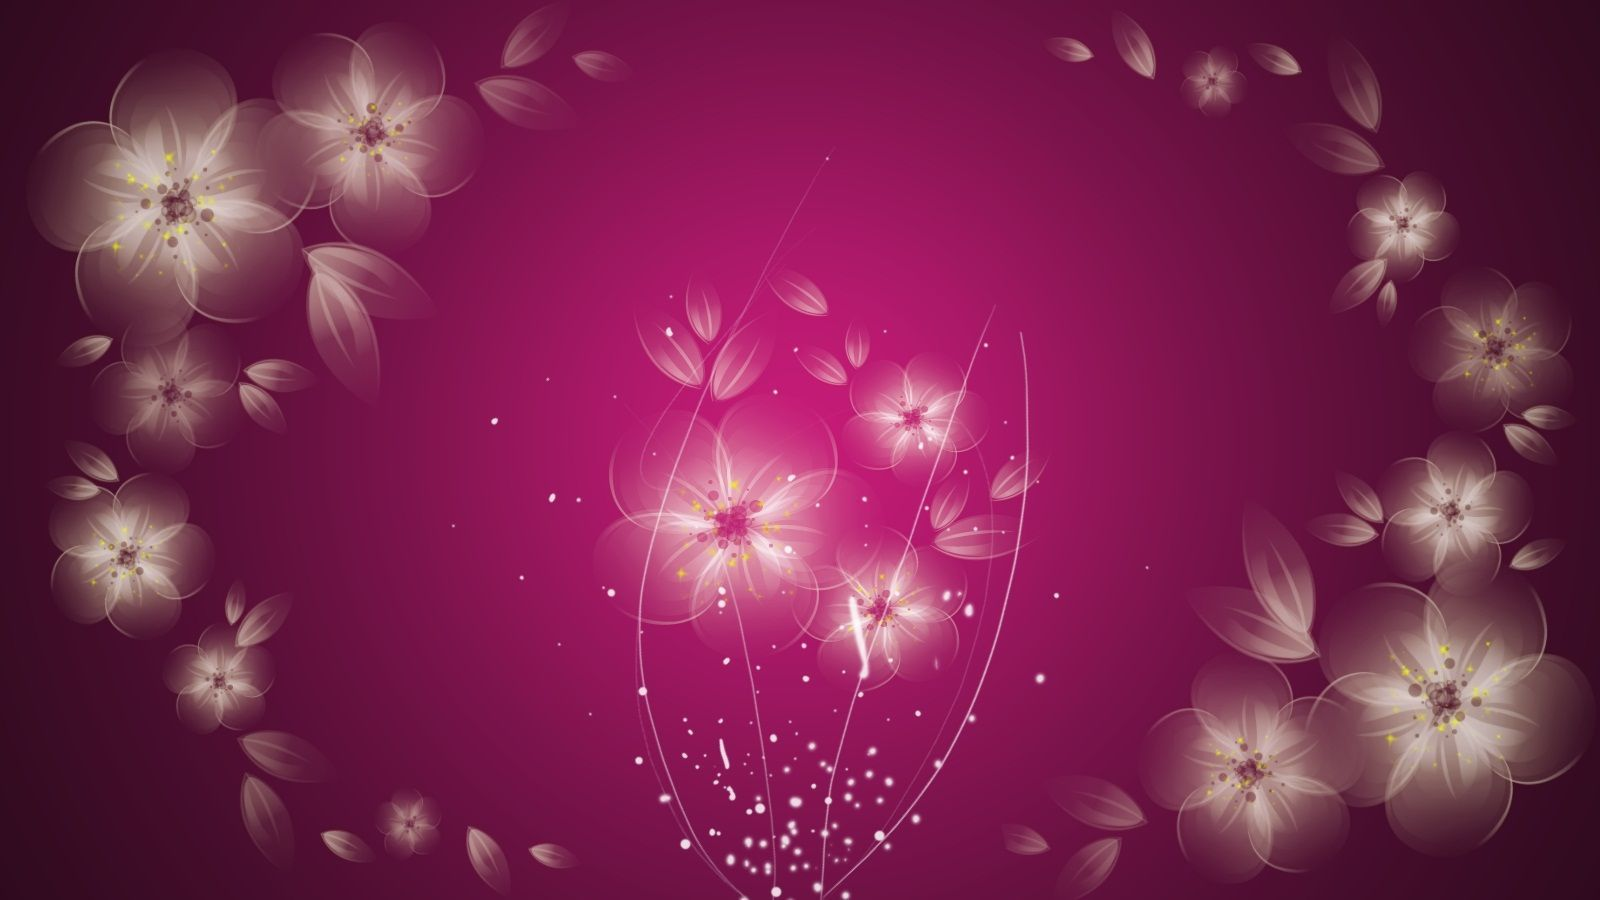 Cute Valentines Day Wallpapers Pink Desktop Backgrounds Group 75